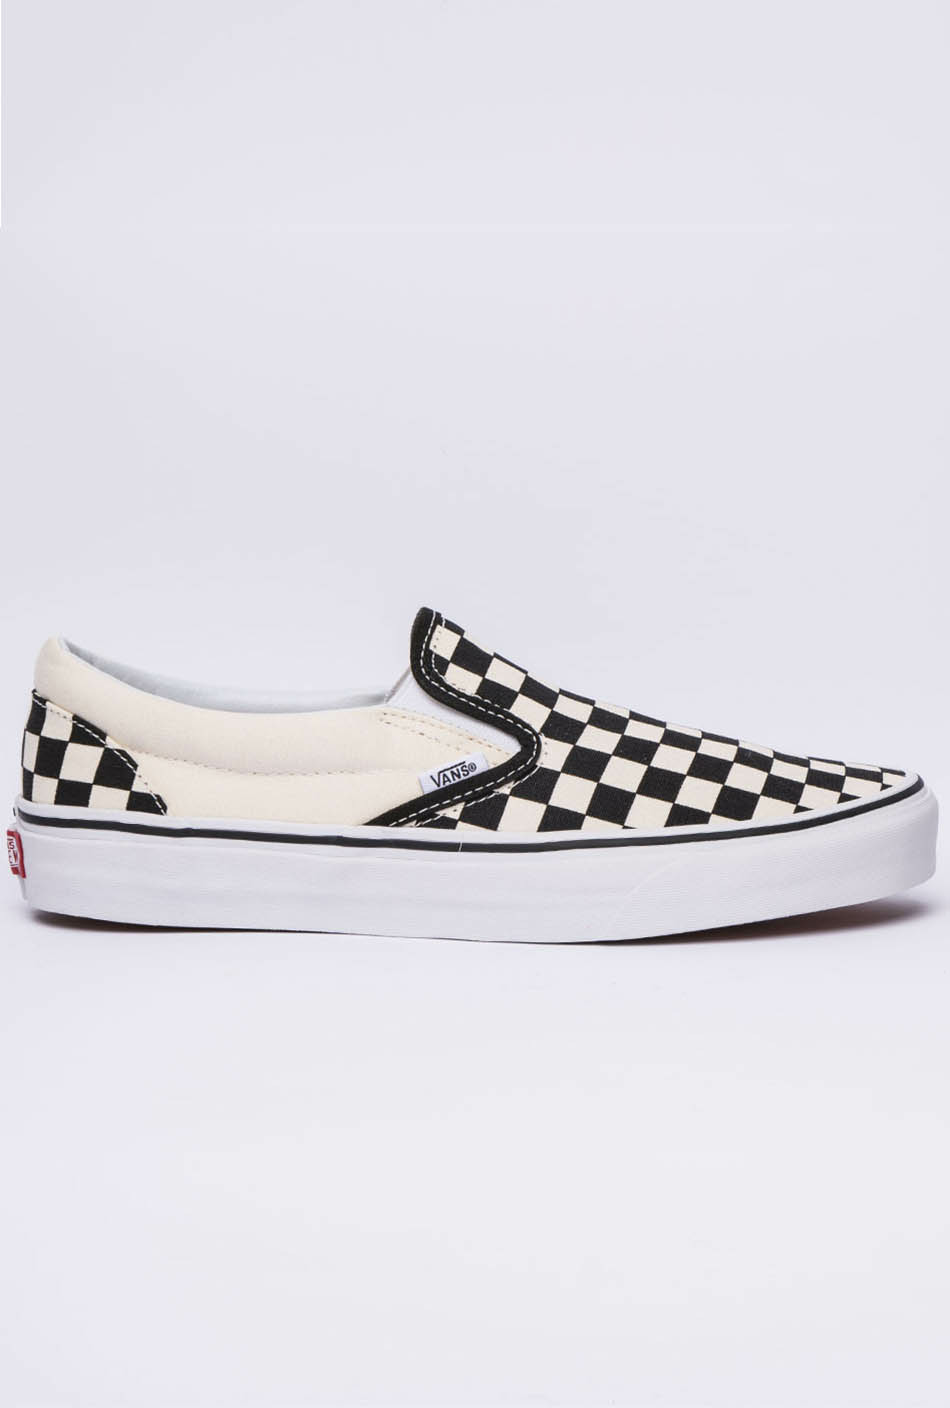 seguro Regan Compositor  Vans Classic Slip-On BI Black White by Kaotiko e-Shop